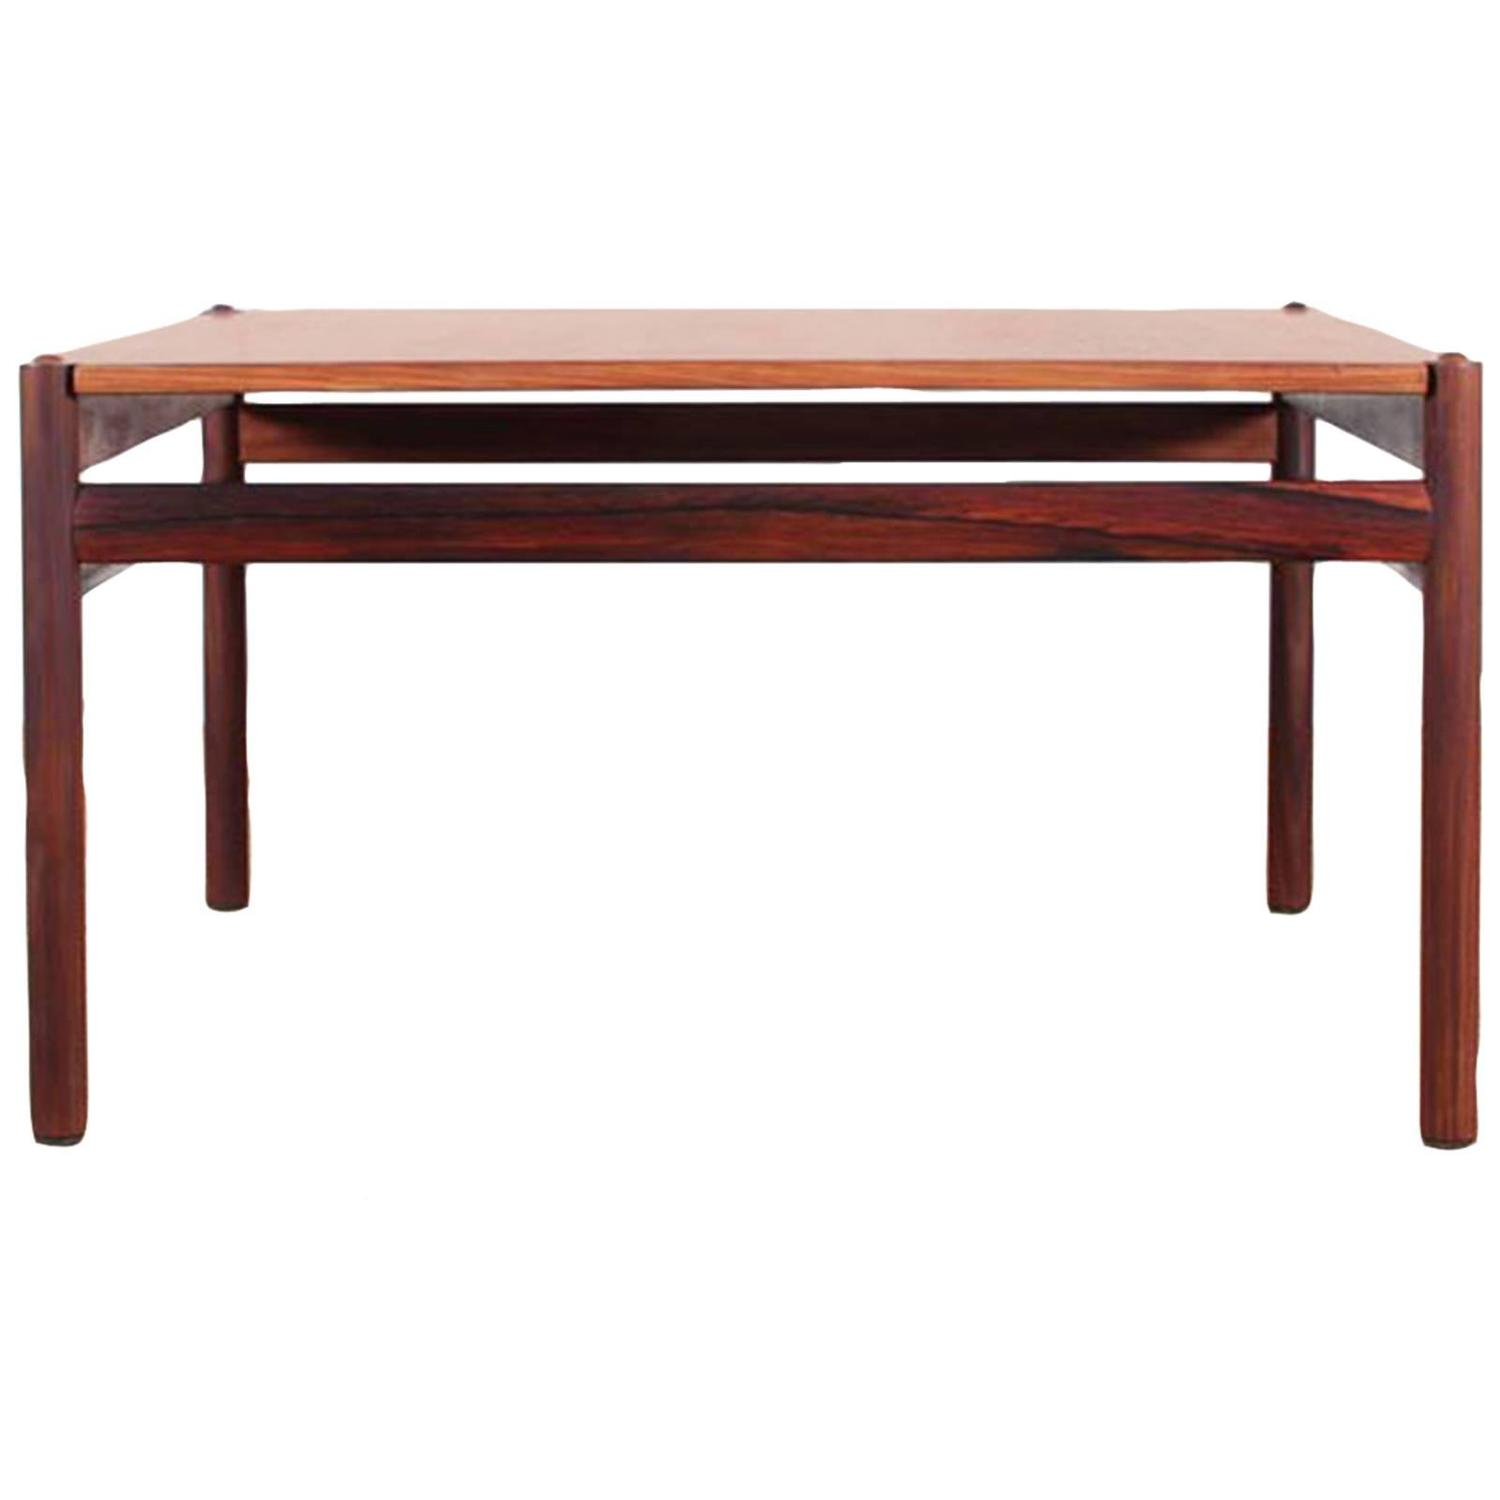 Mid Century Modern Scandinavian Coffee Table In Rio Rosewood By Ole Wanscher At 1stdibs